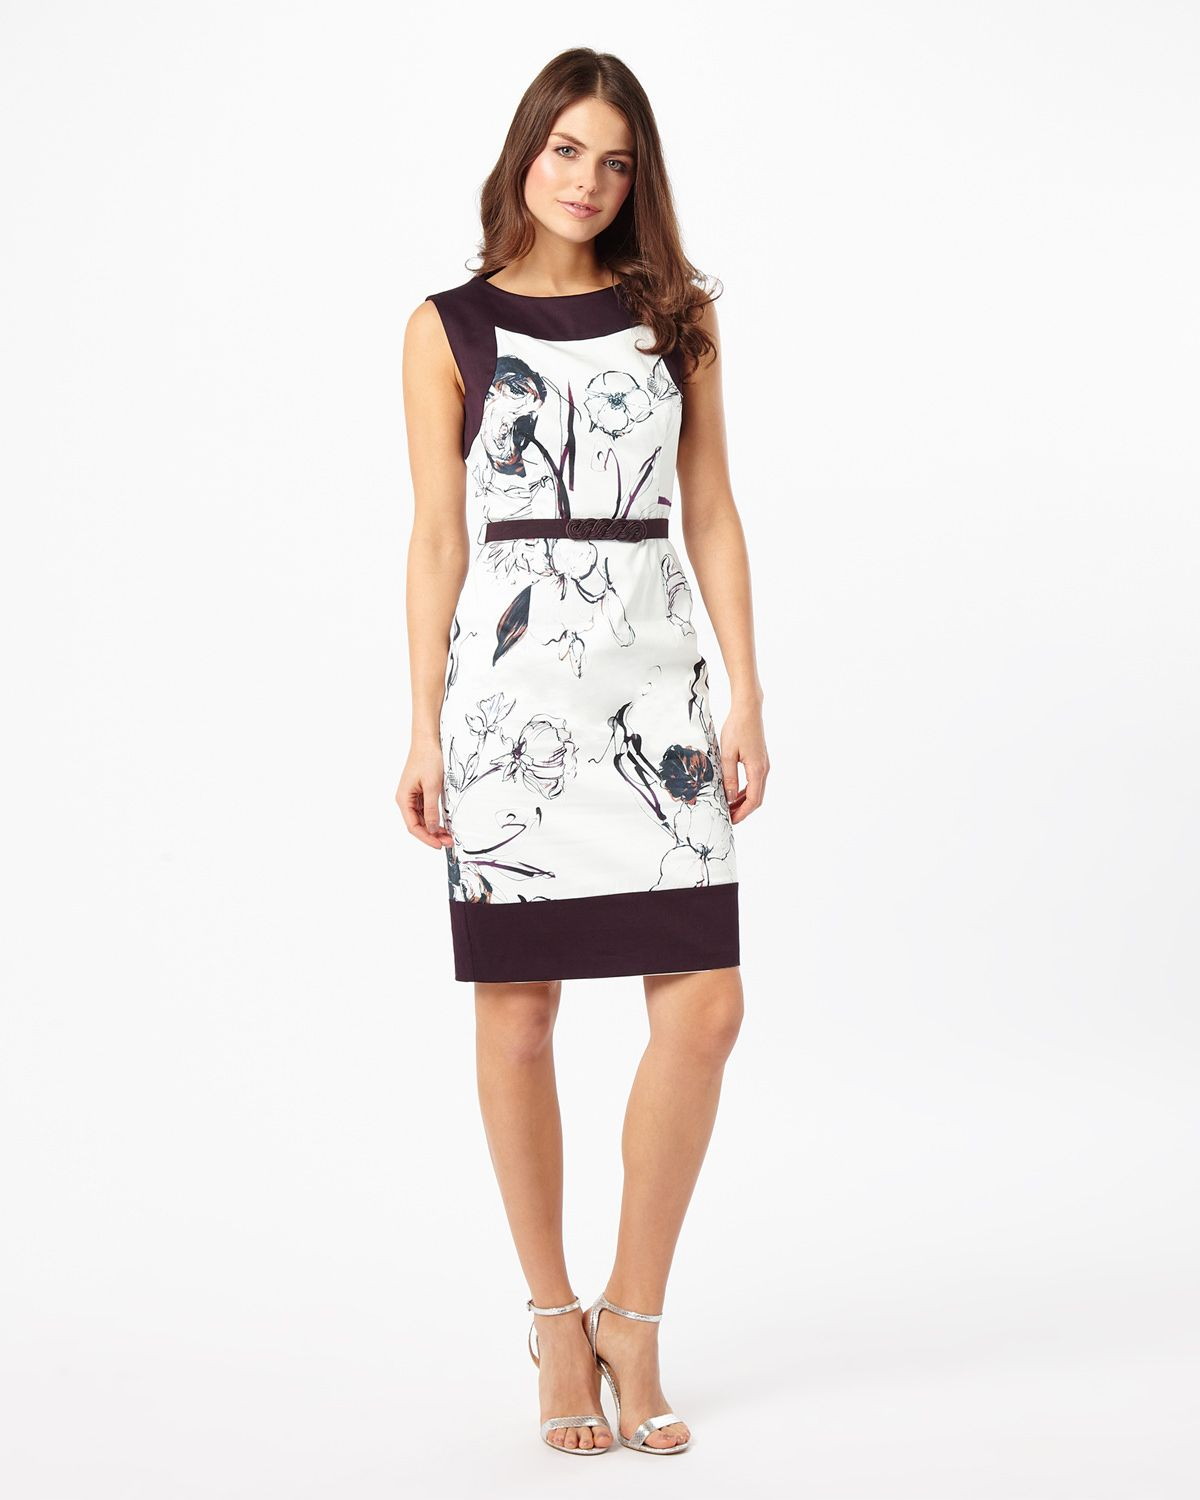 Floral print wedding dresses  A fitted stretch cotton dress in an abstract floral print with